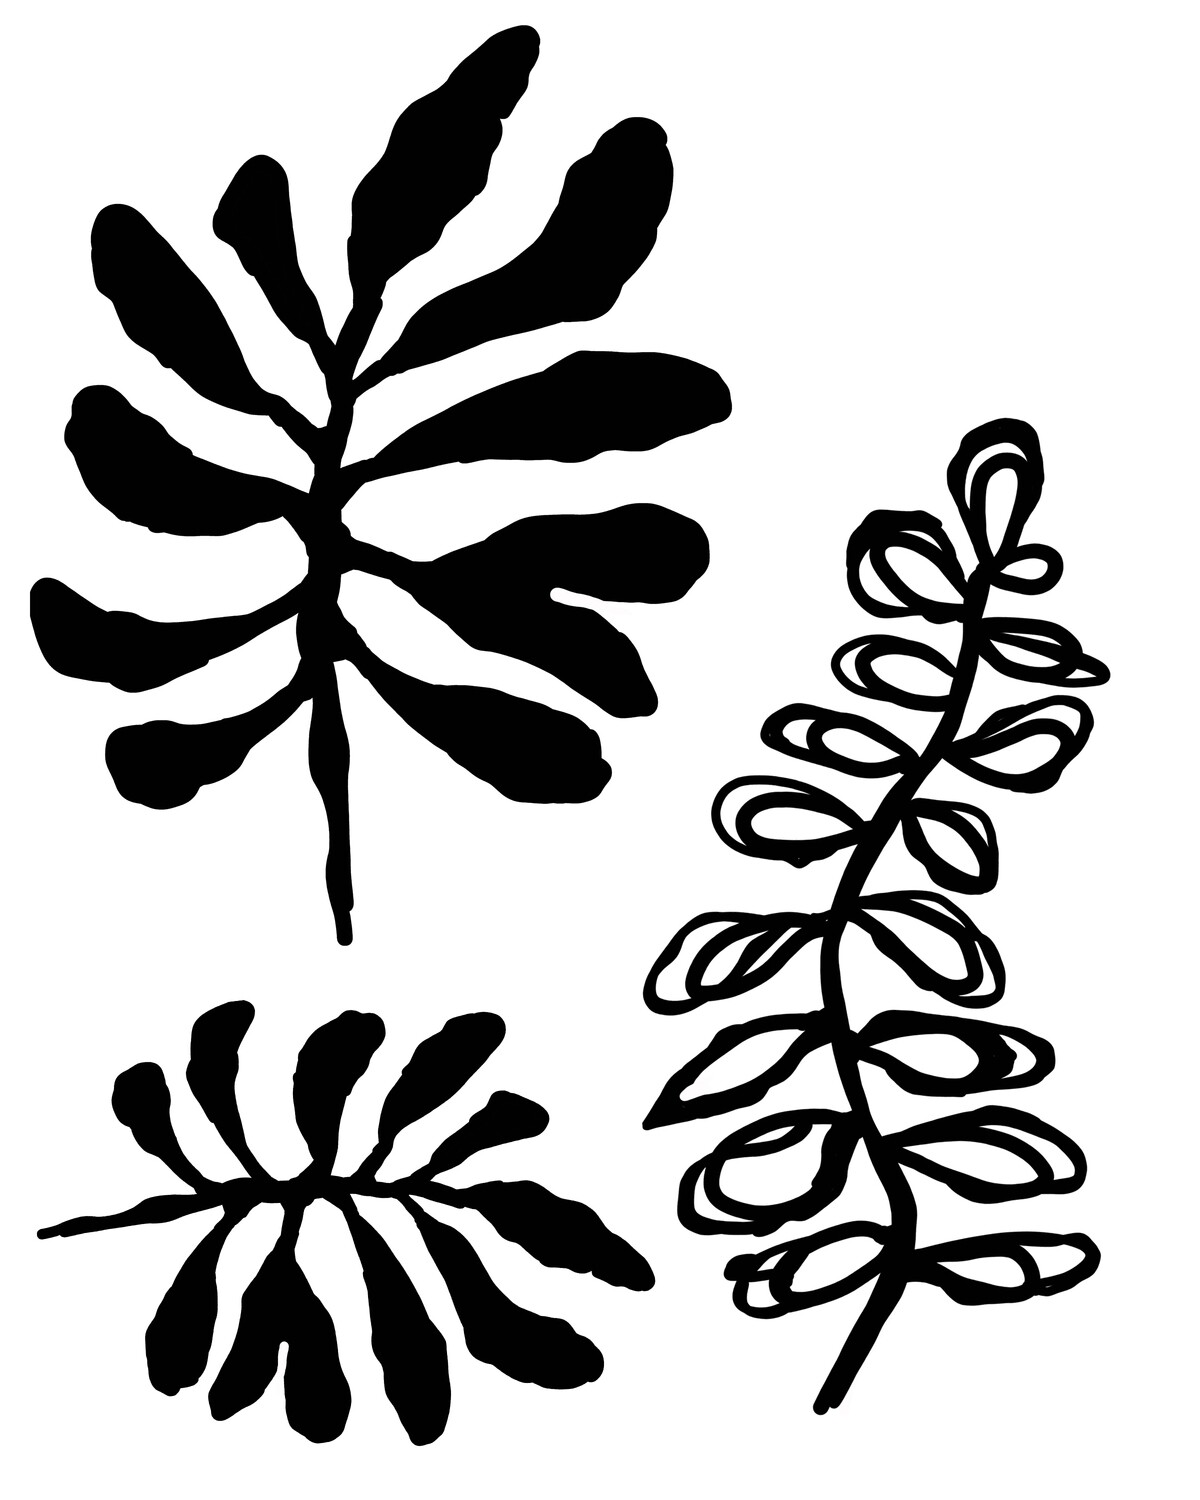 Inky Leaves 1 with masks stencil 8x10